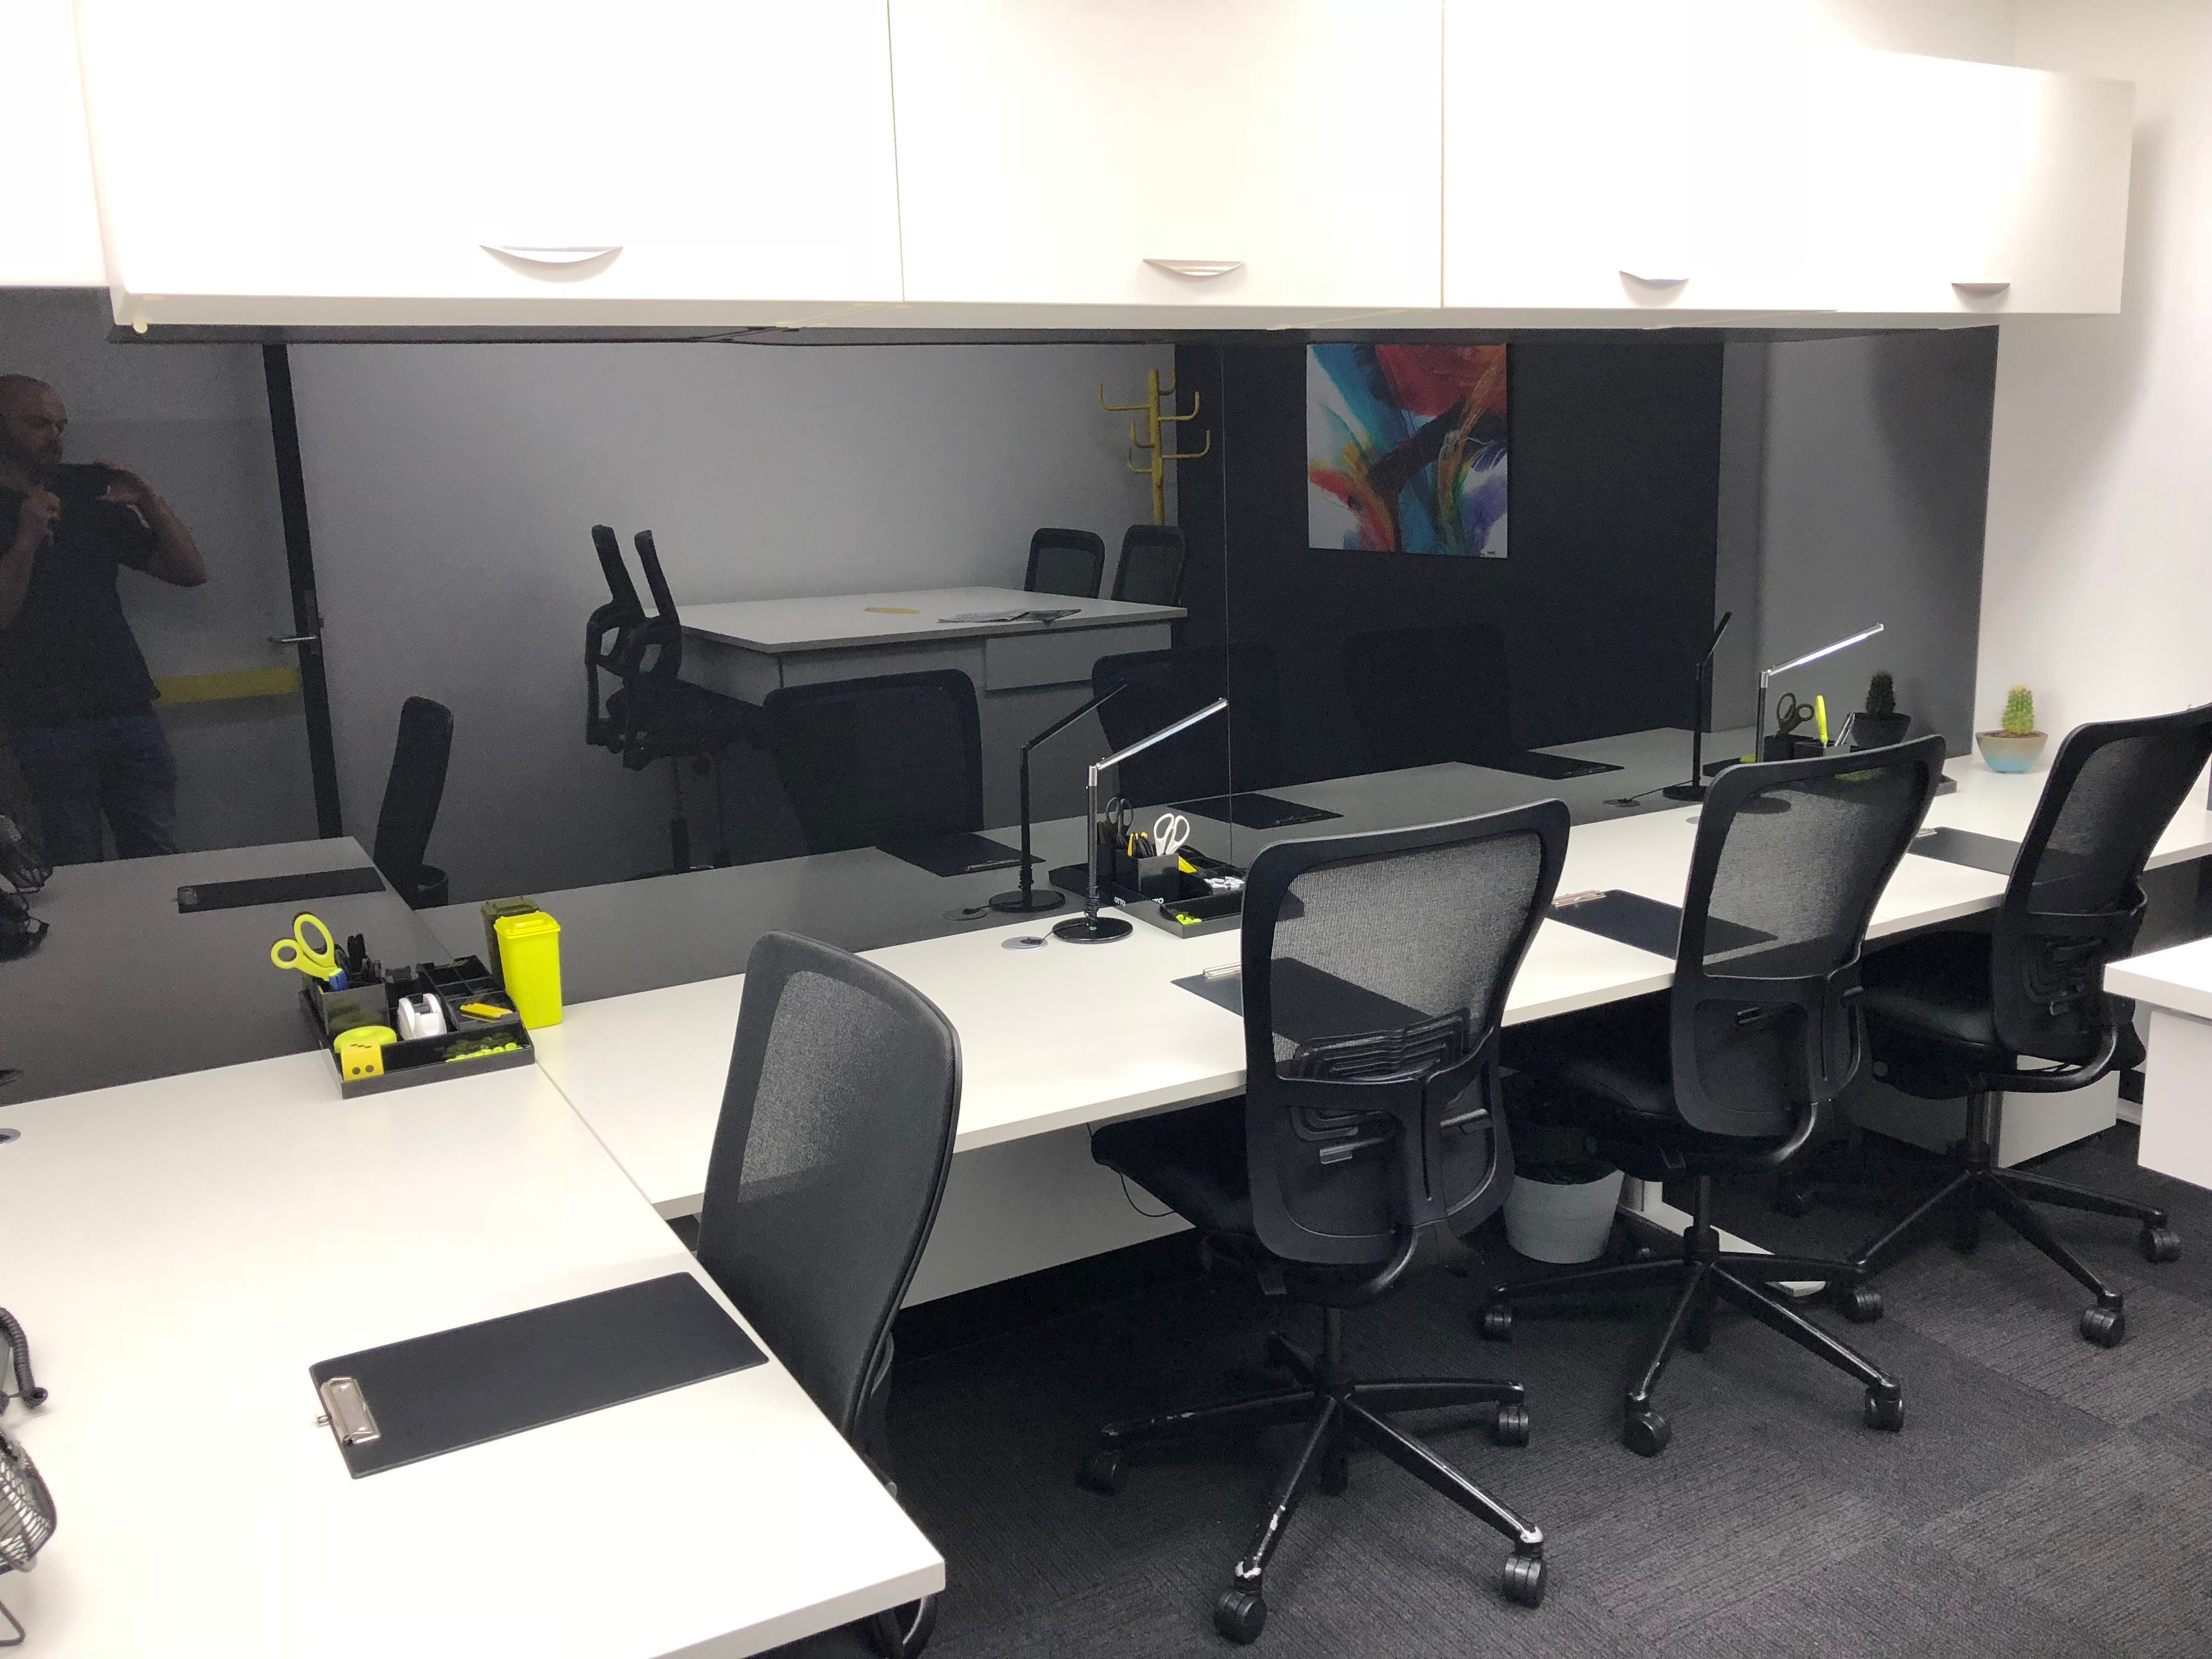 Suite 211-212, shared office at Anytime Offices, image 2